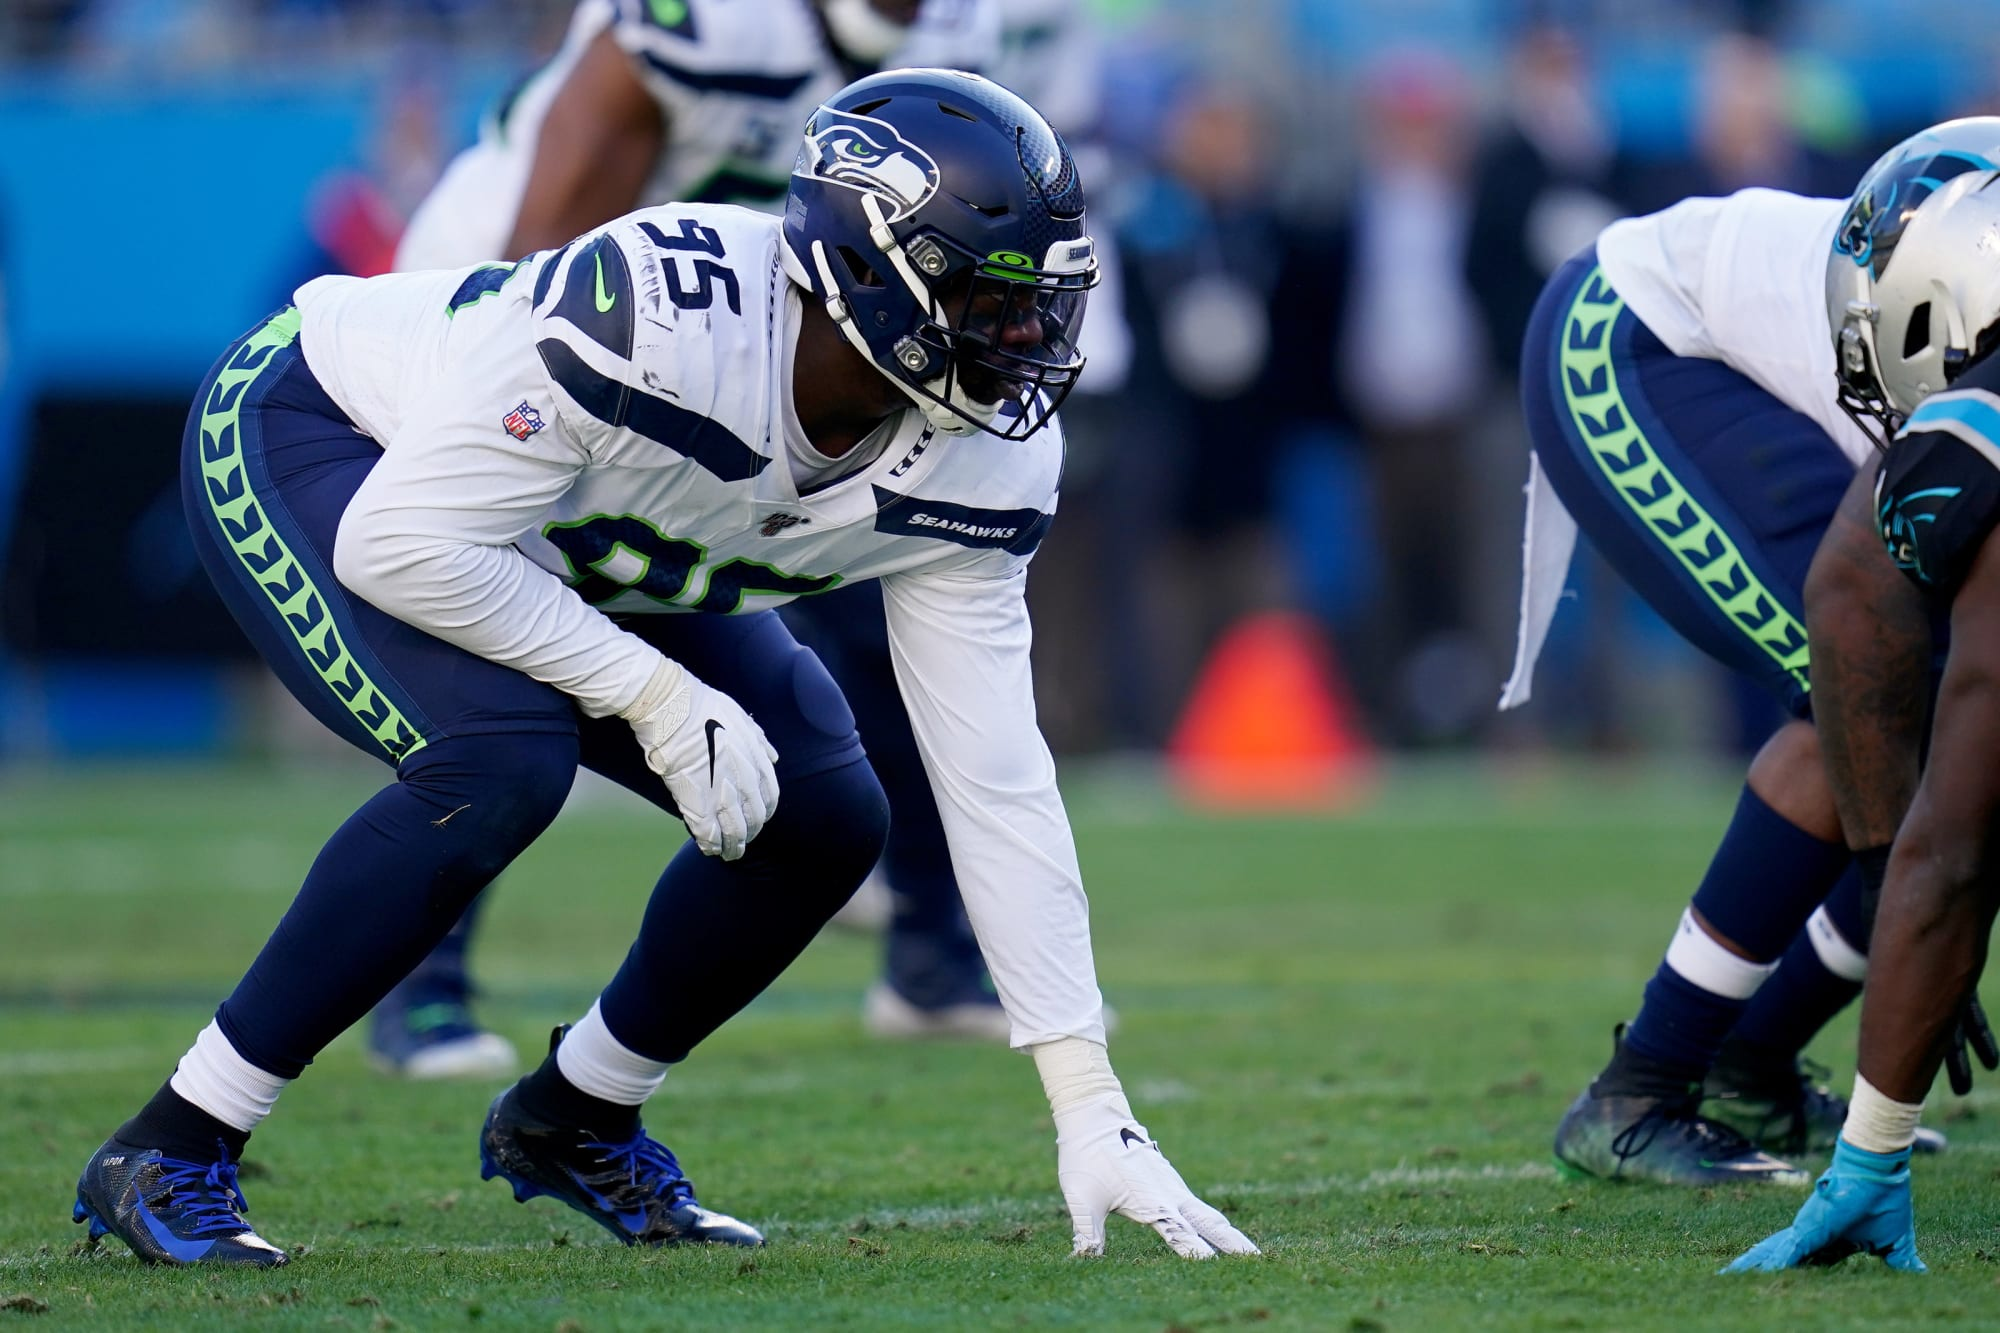 Seattle Seahawks: L.J. Collier searching for redemption in 2020